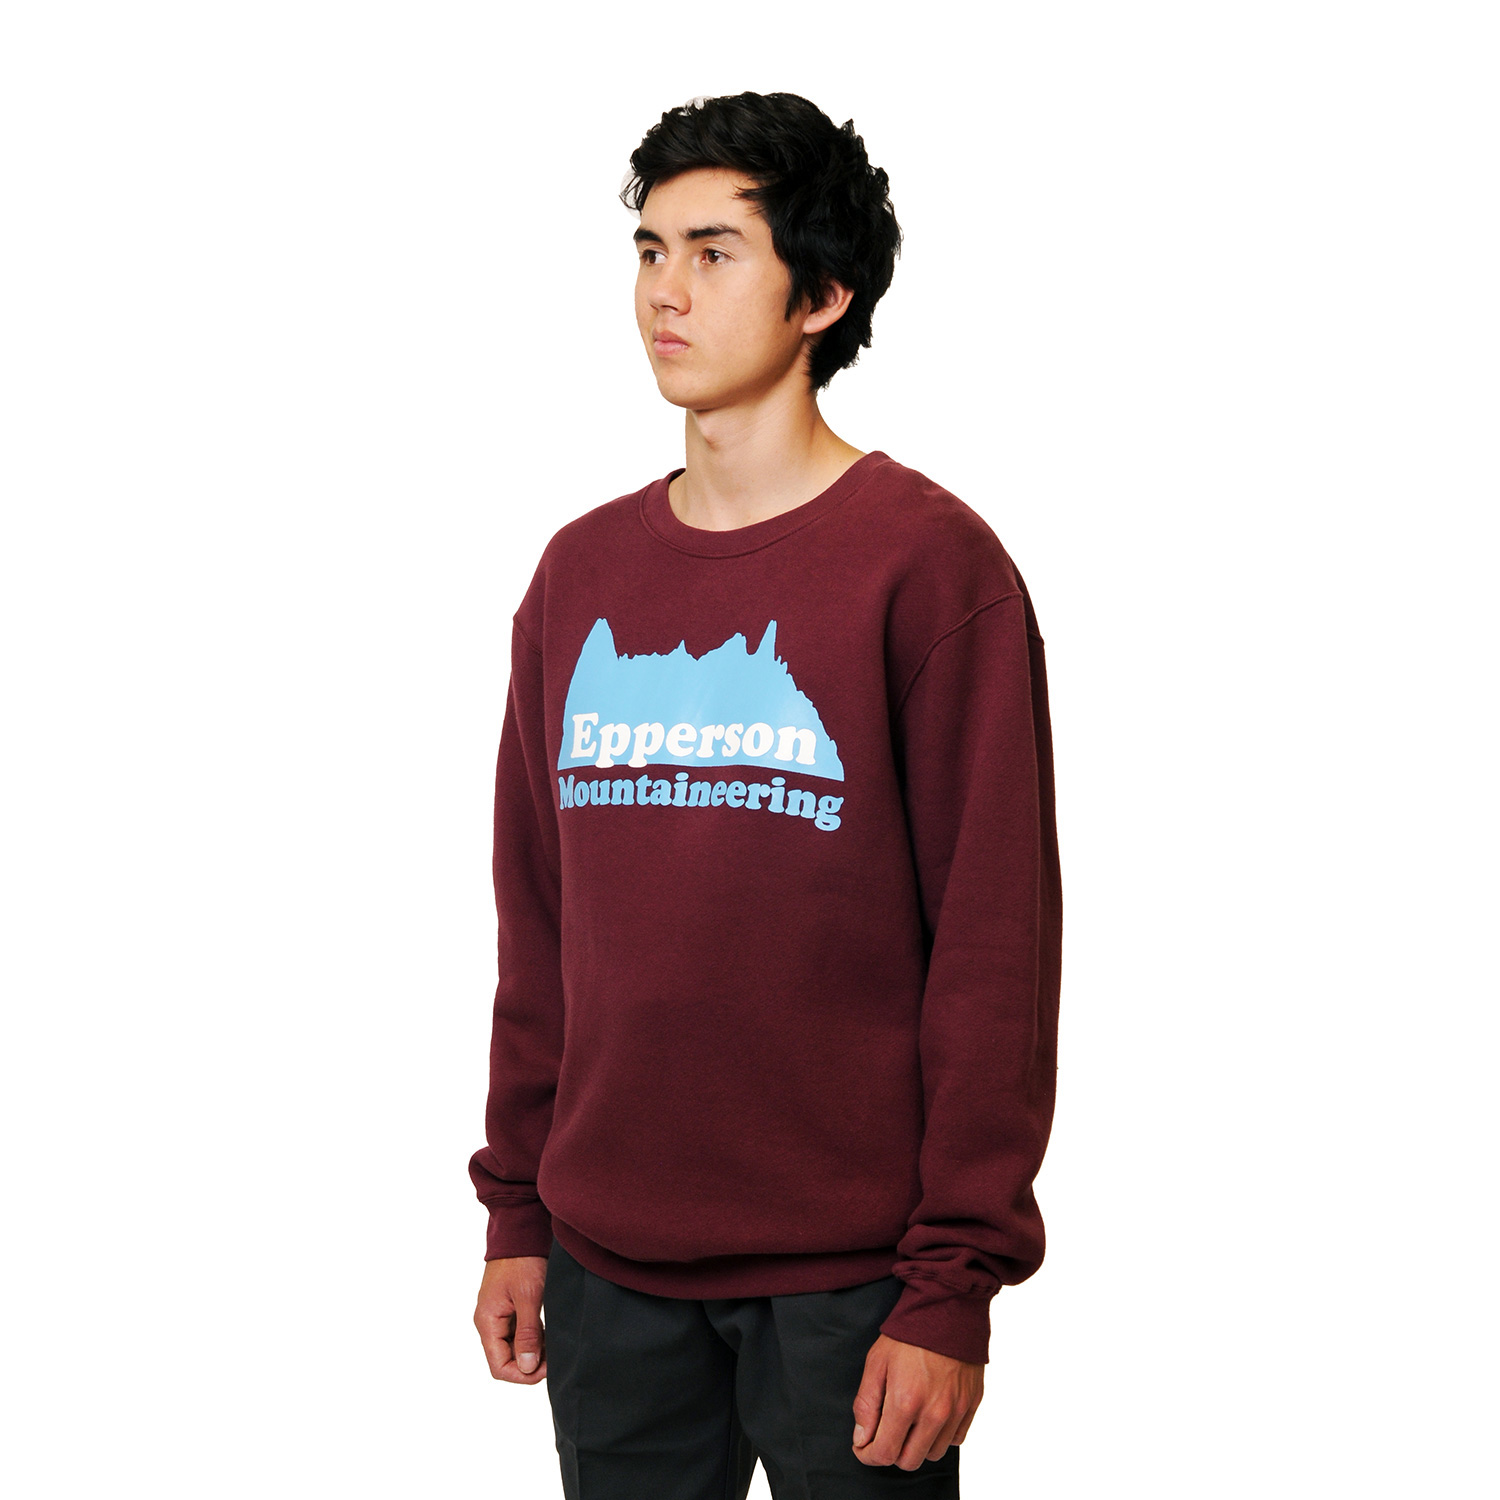 4-Heavyweight-Fleece-Crewneck-Sweater,-Maroon,-Fitting,-(DIV_3665).jpg